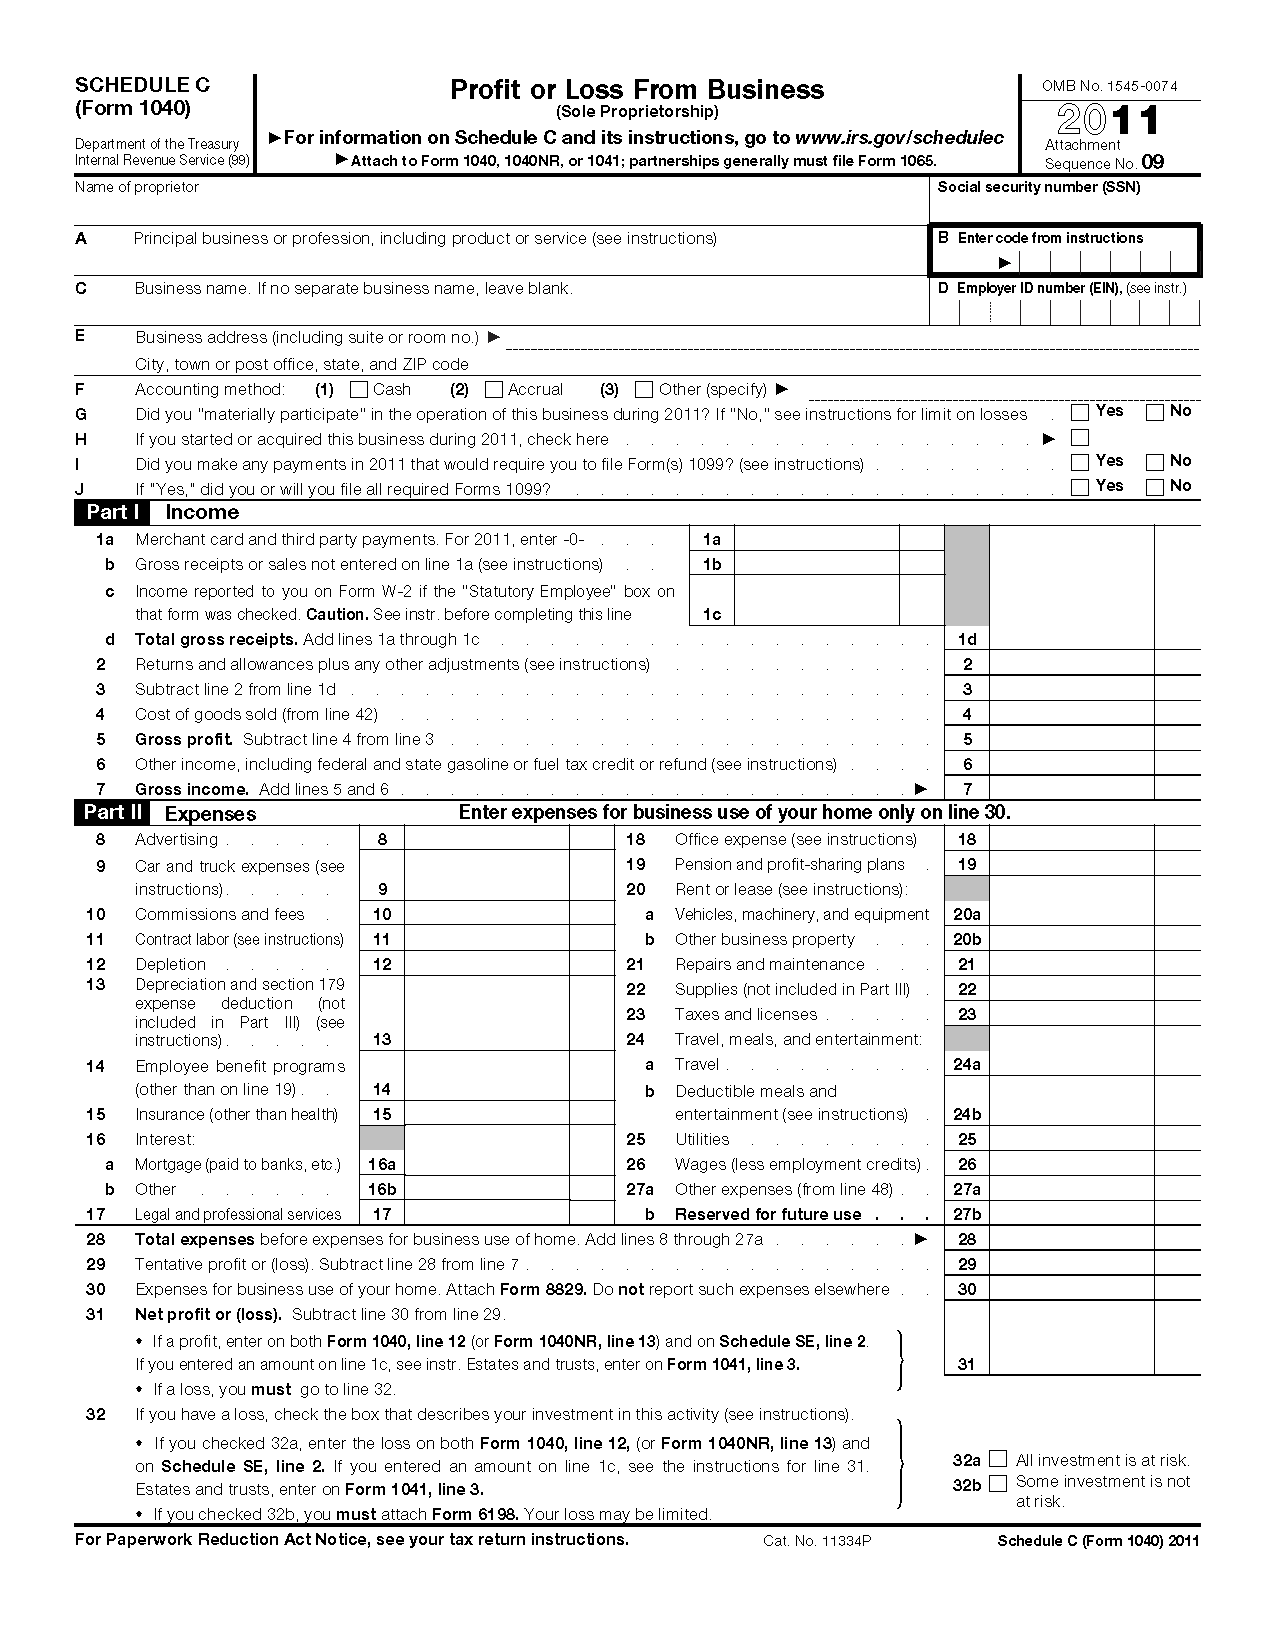 Irs Schedule A Worksheet